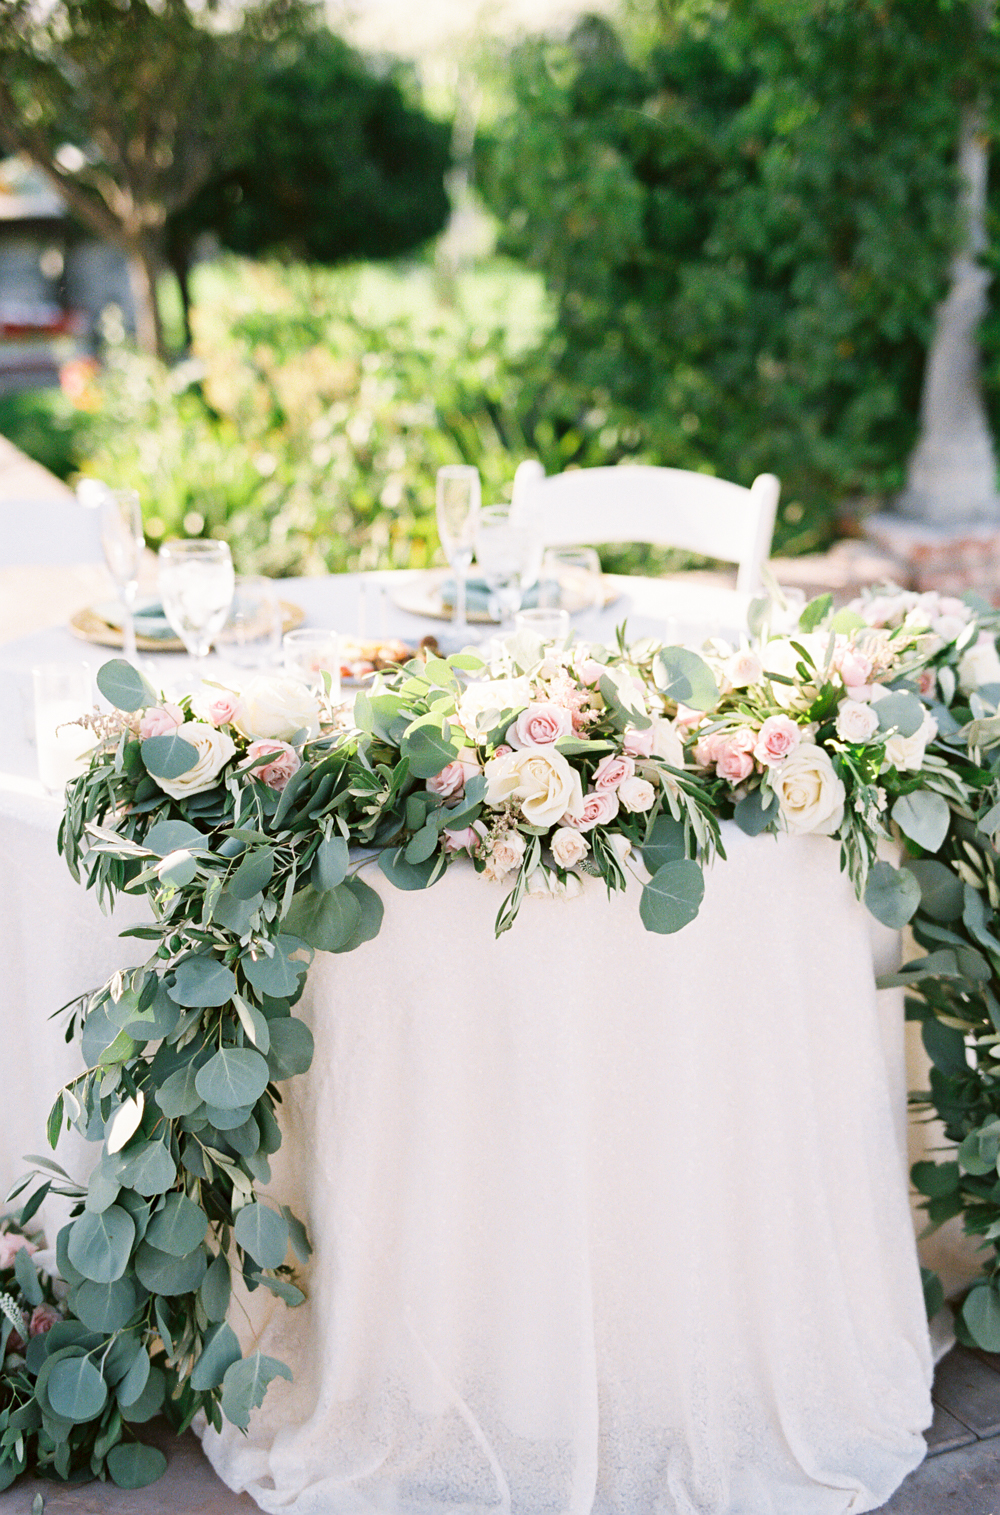 Posh Peony garland | sweetheart table | Mount Palomar Winery Wedding | Blush and Lavender | San Diego wedding photographer | Temecula wedding photographer | Southern California film photographer | Whiskers and Willow Photography